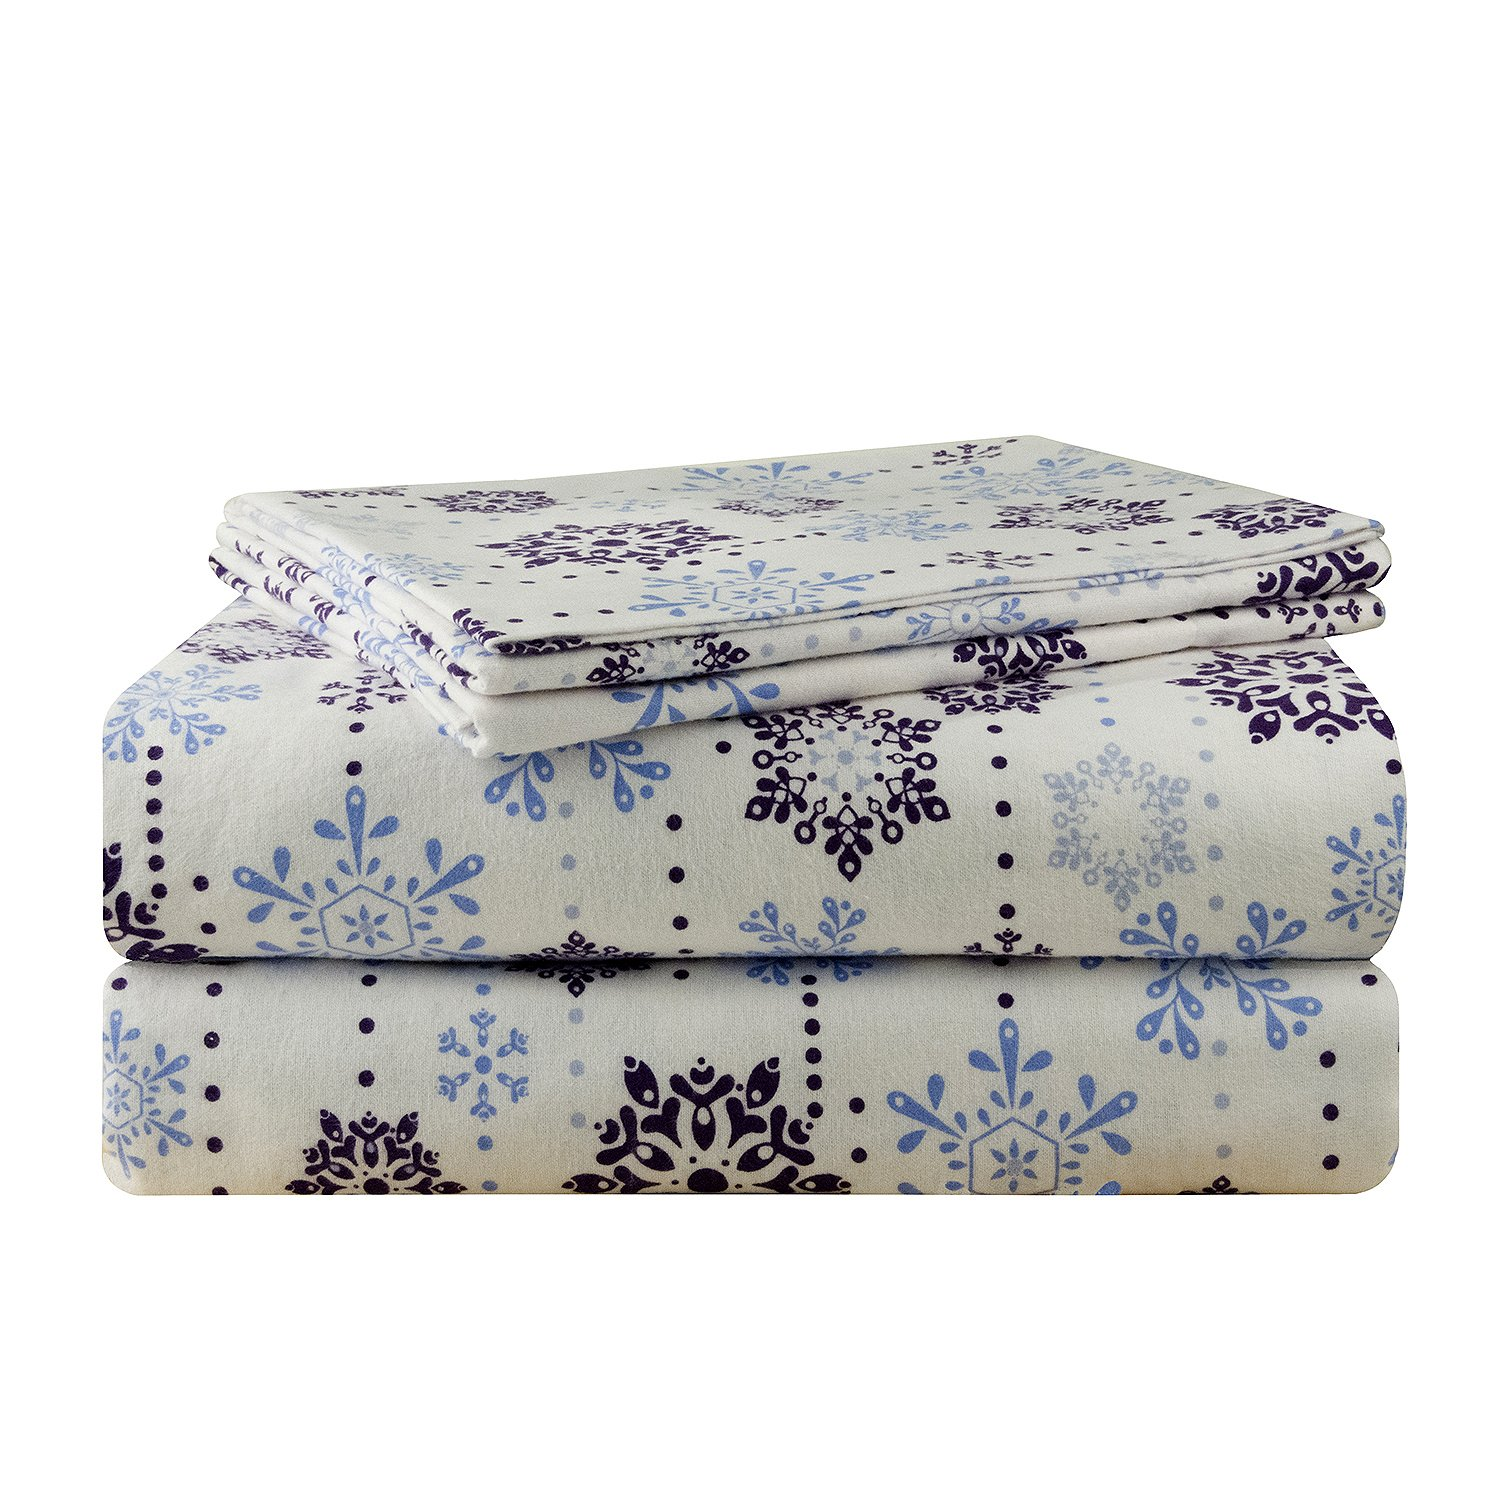 Pointehaven 200 GSM Flannel Sheet Set, Twin, Printed, Snow Drop